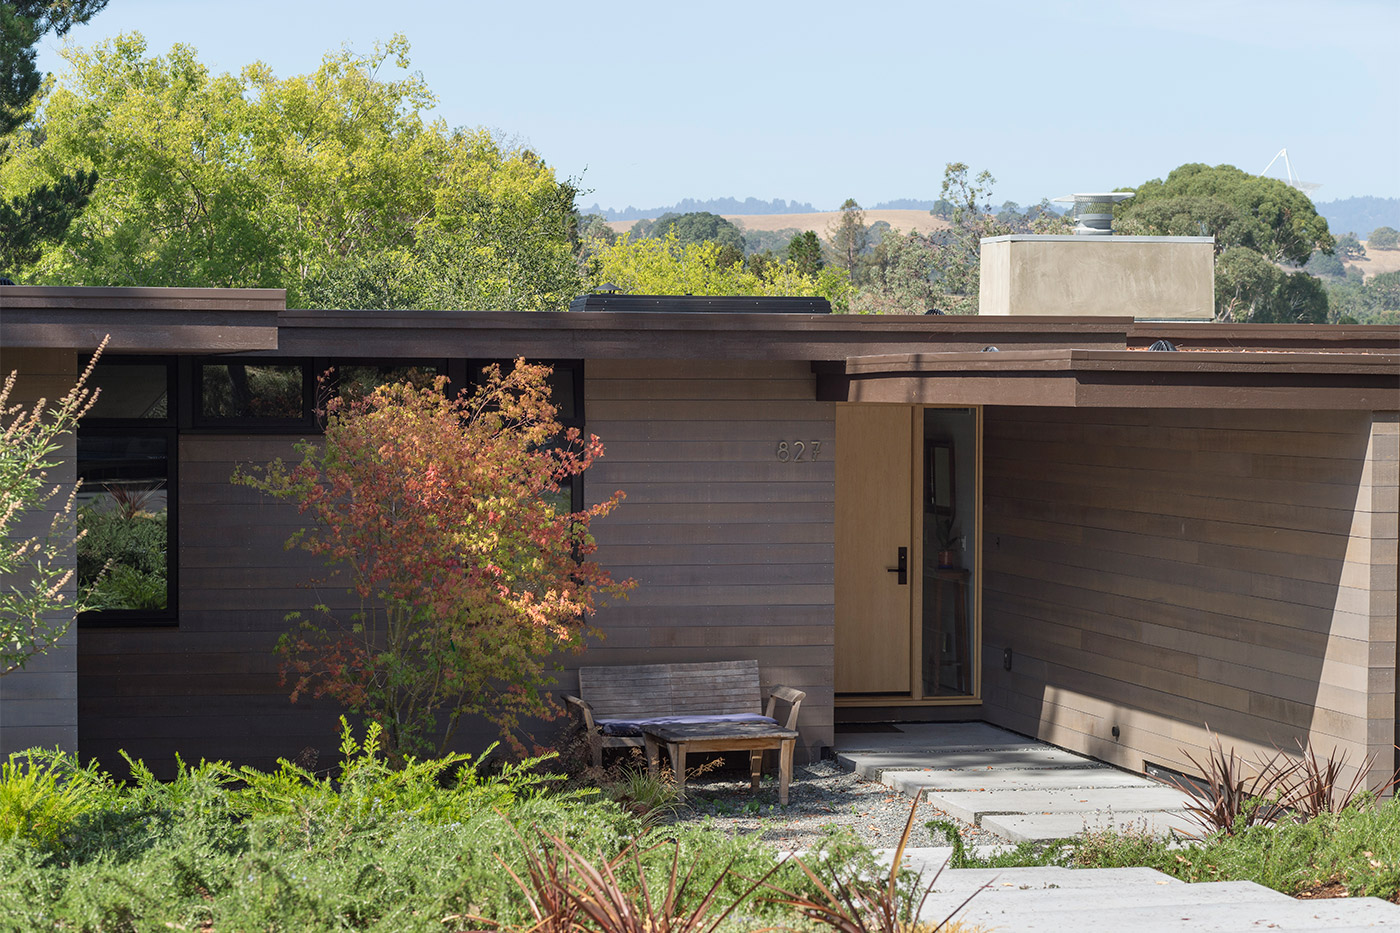 Custom home entry with wood door of home design and construction near Palo Alto and Stanford University